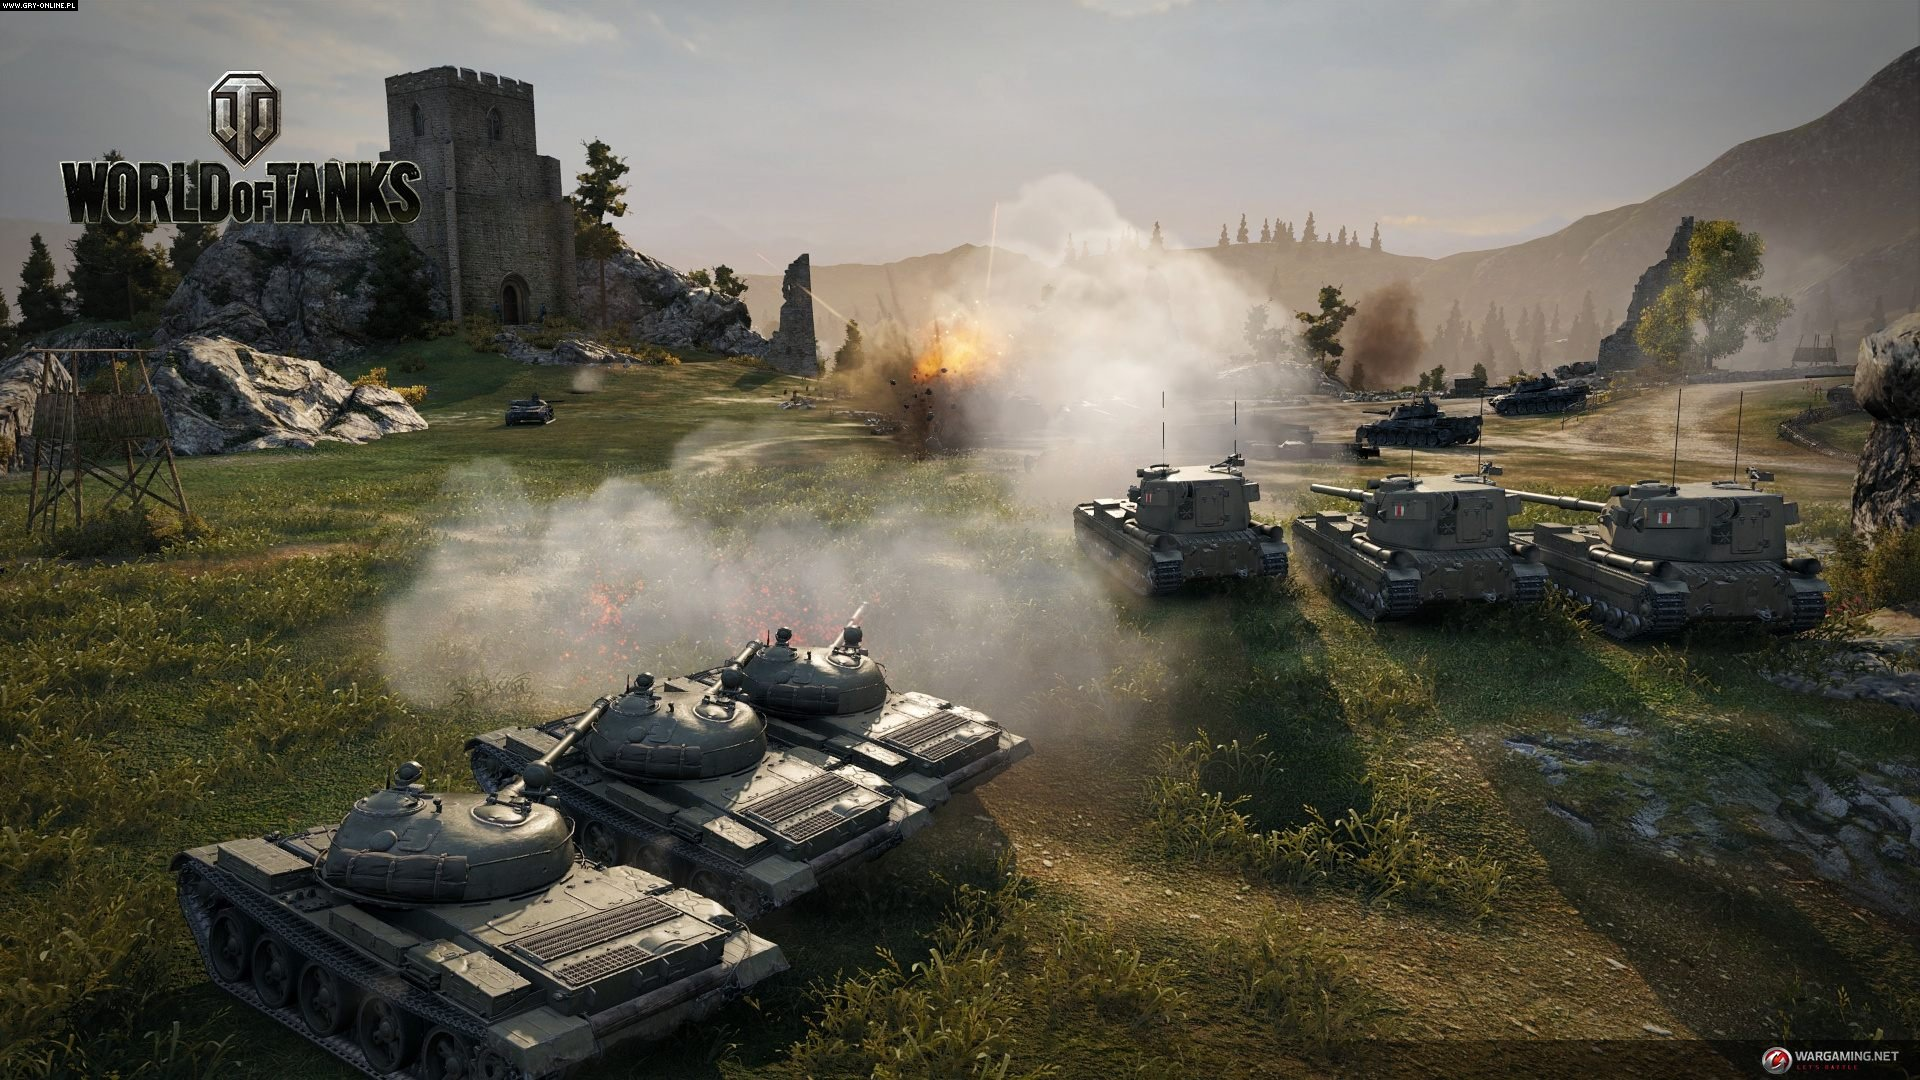 World of Tanks PC, PS4, XONE Games Image 4/397, Wargaming